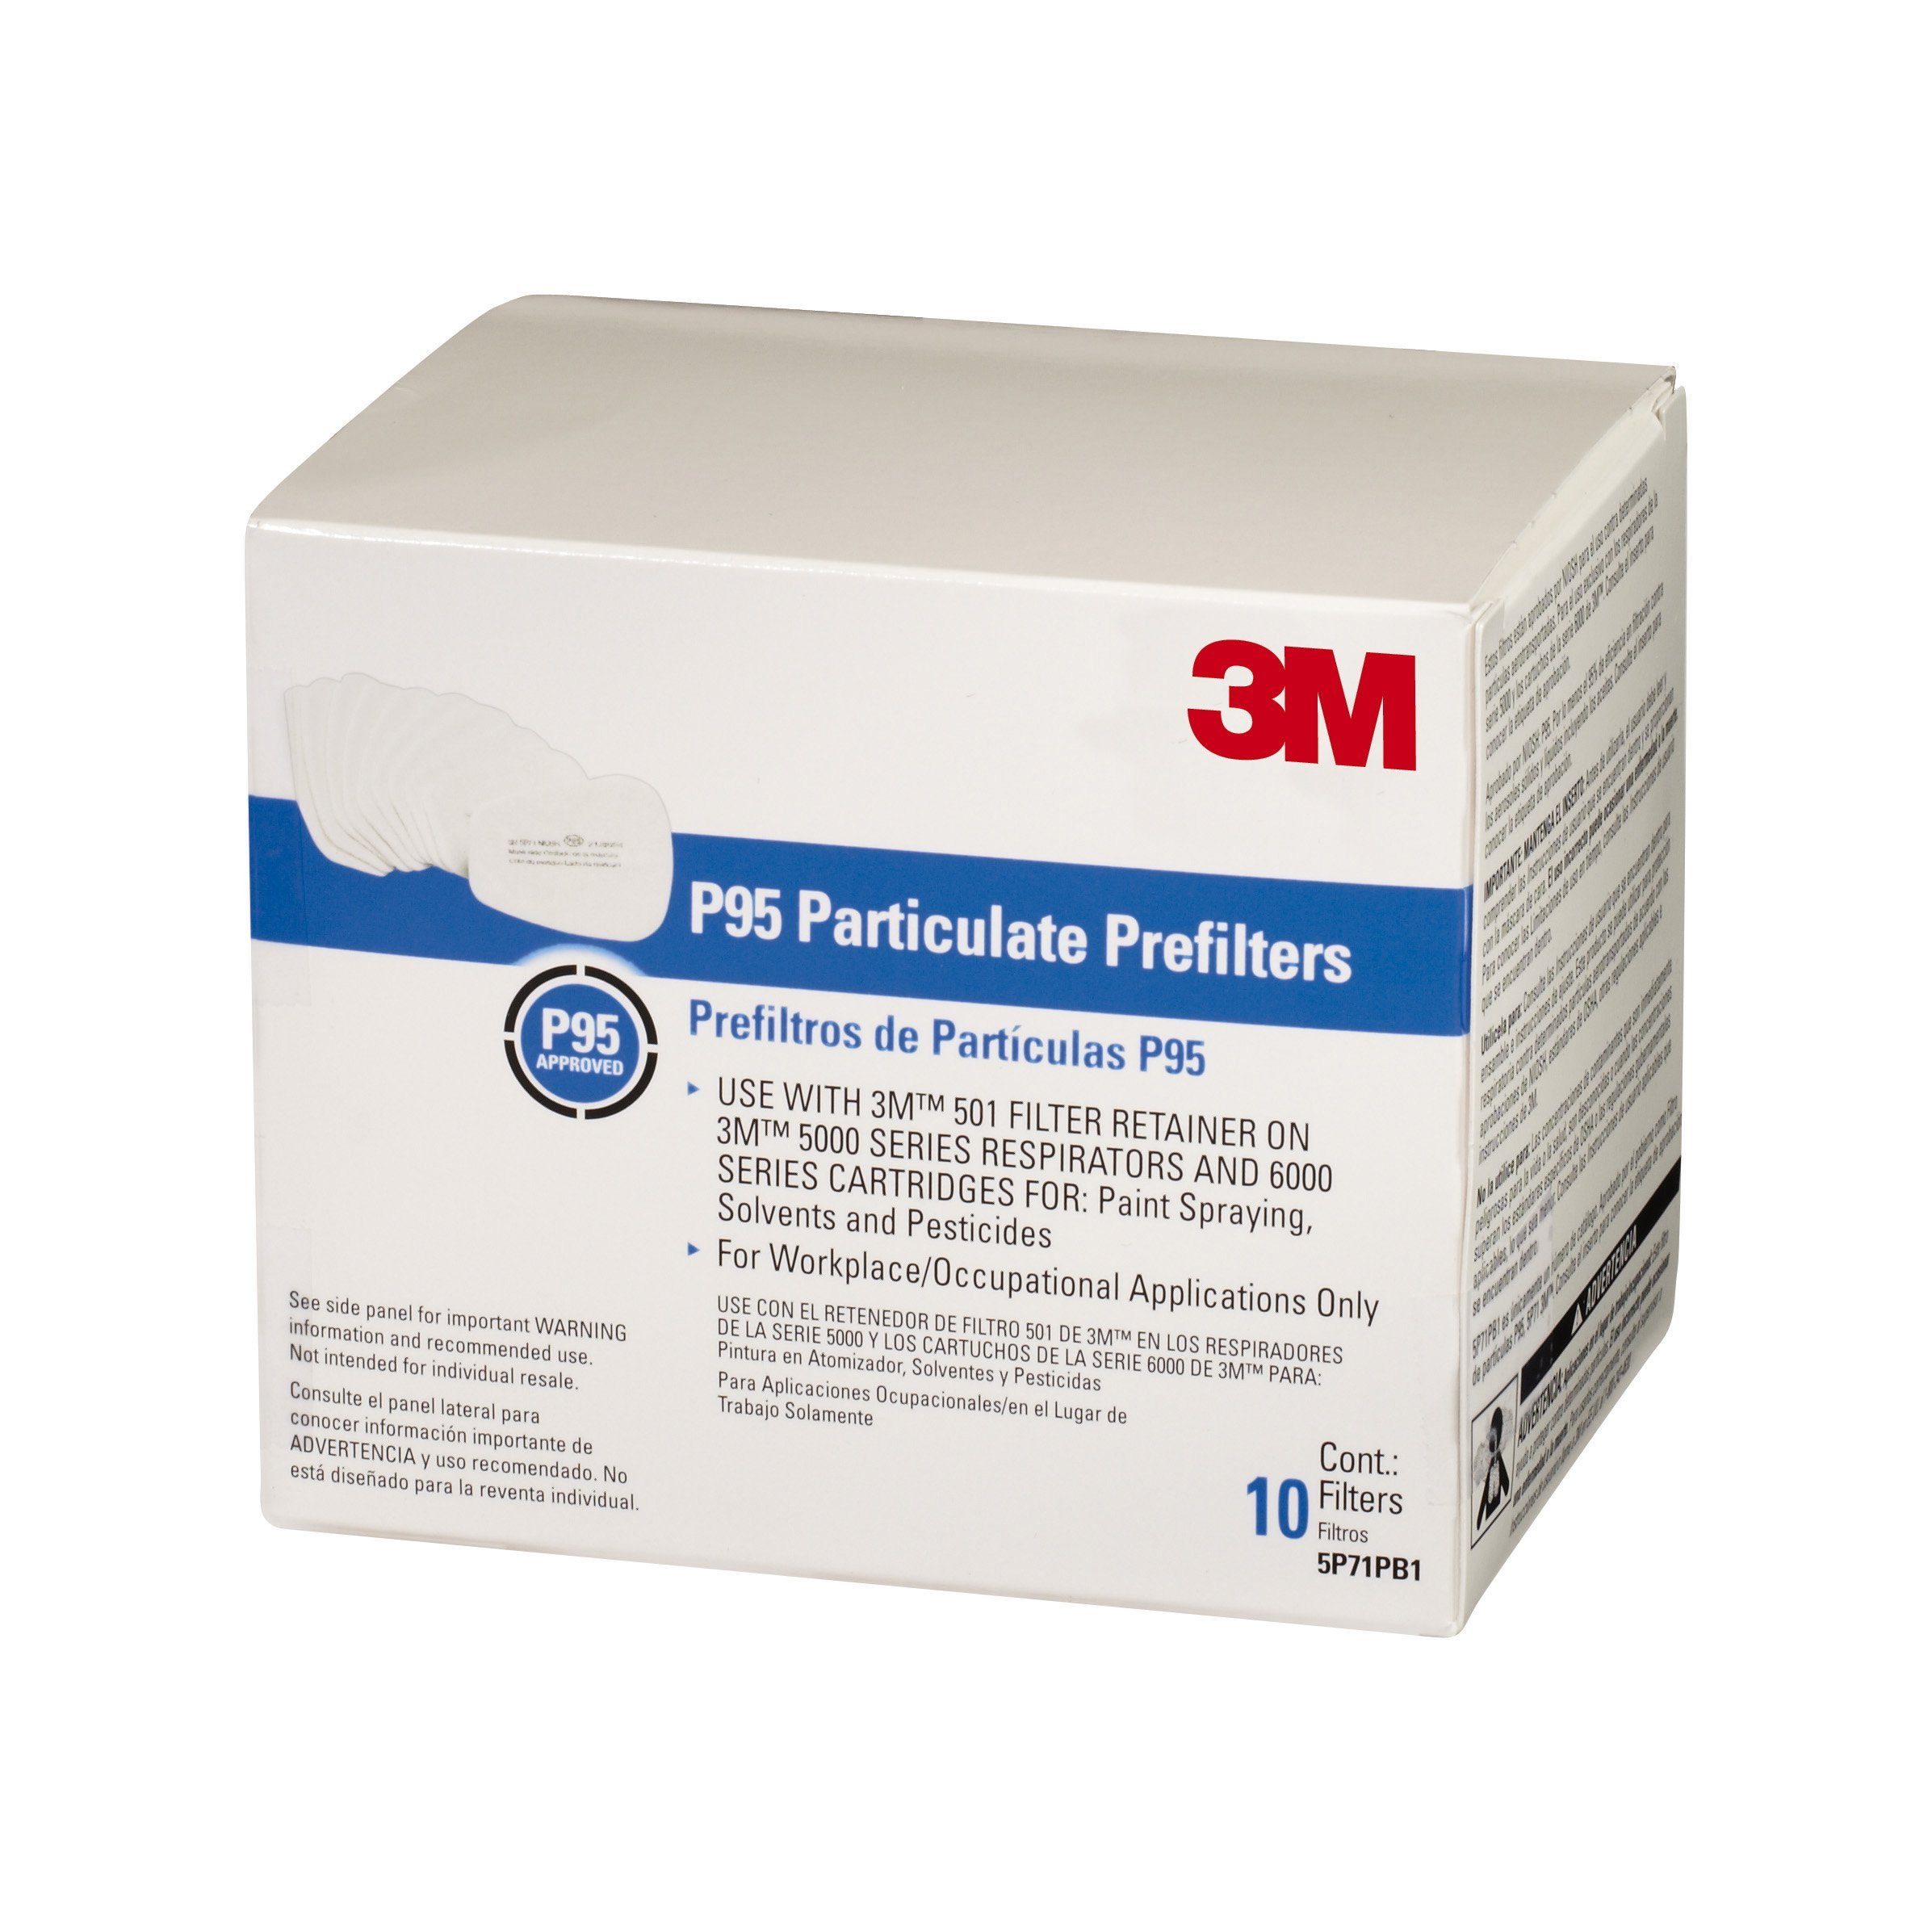 3Maa7|#3M 5P71PB1-B Particulate Prefilters, 10/ Pack, 5 Packper Case, by 3M Safety (Image #2)